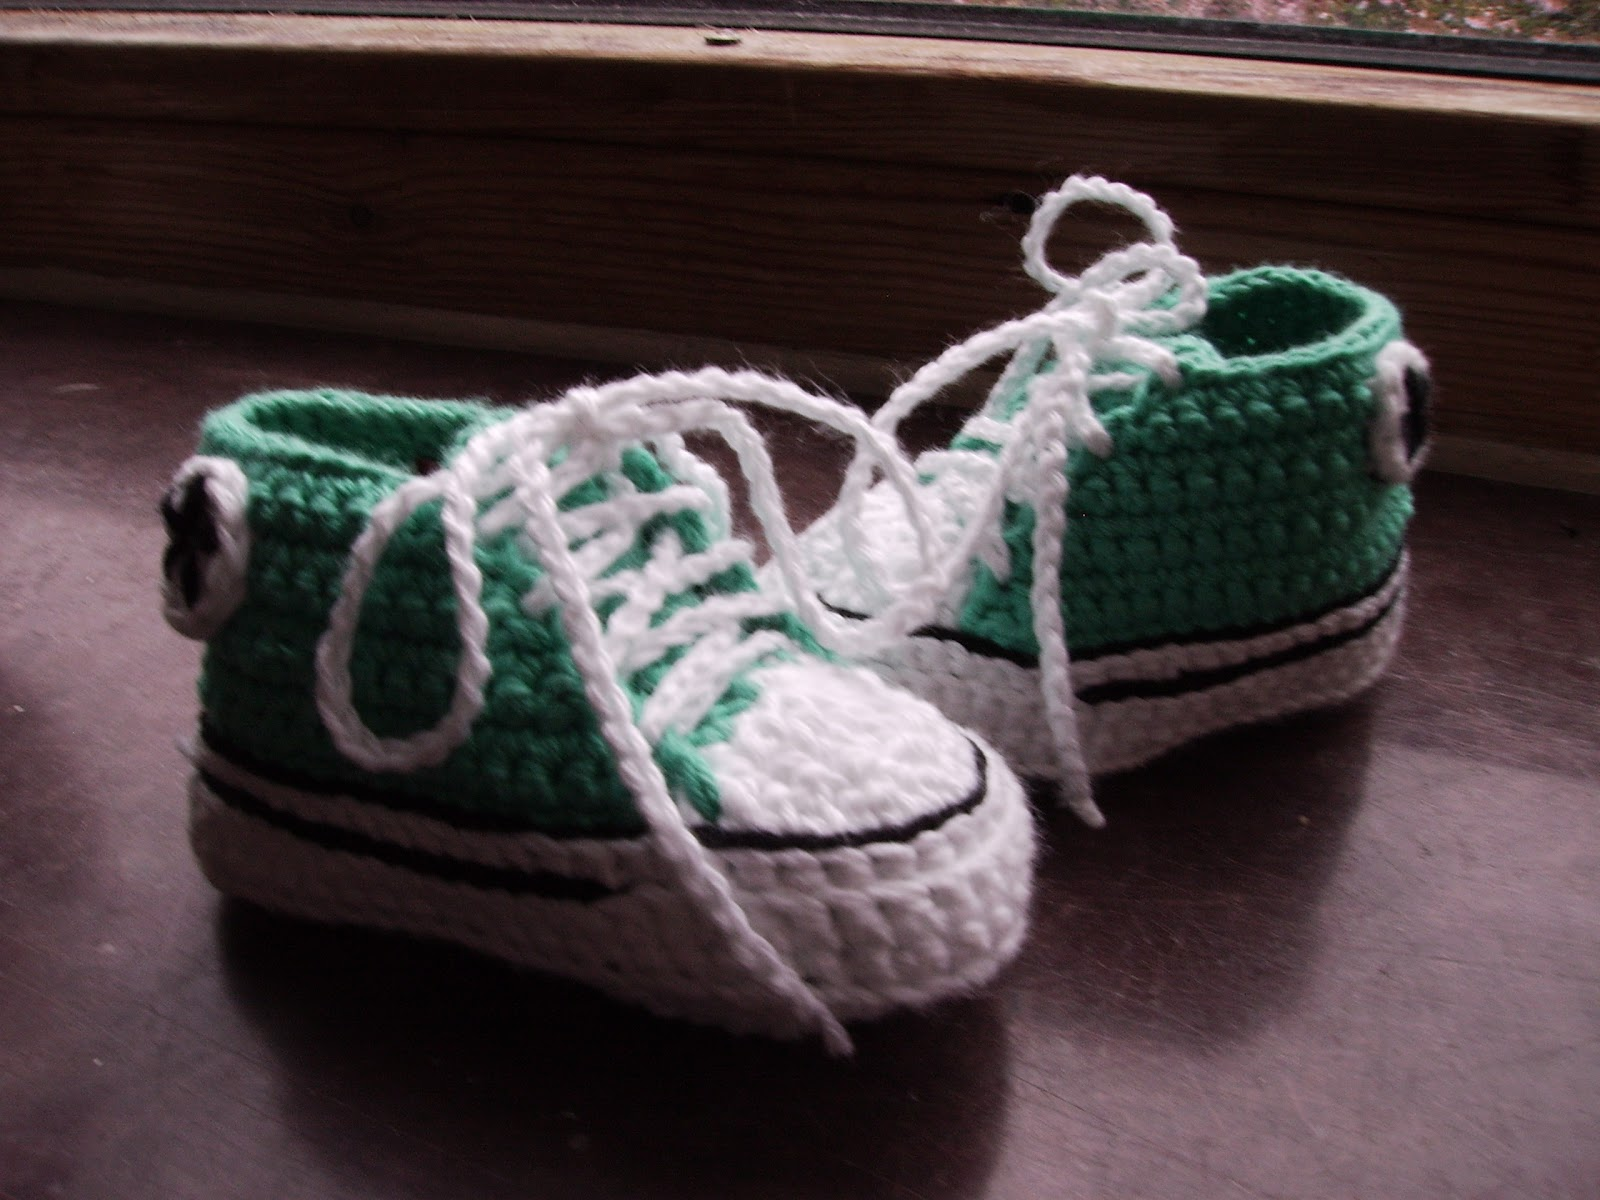 Crochet Baby Converse Shoes Pattern : Anjas h?klerier: Baby converse shoes